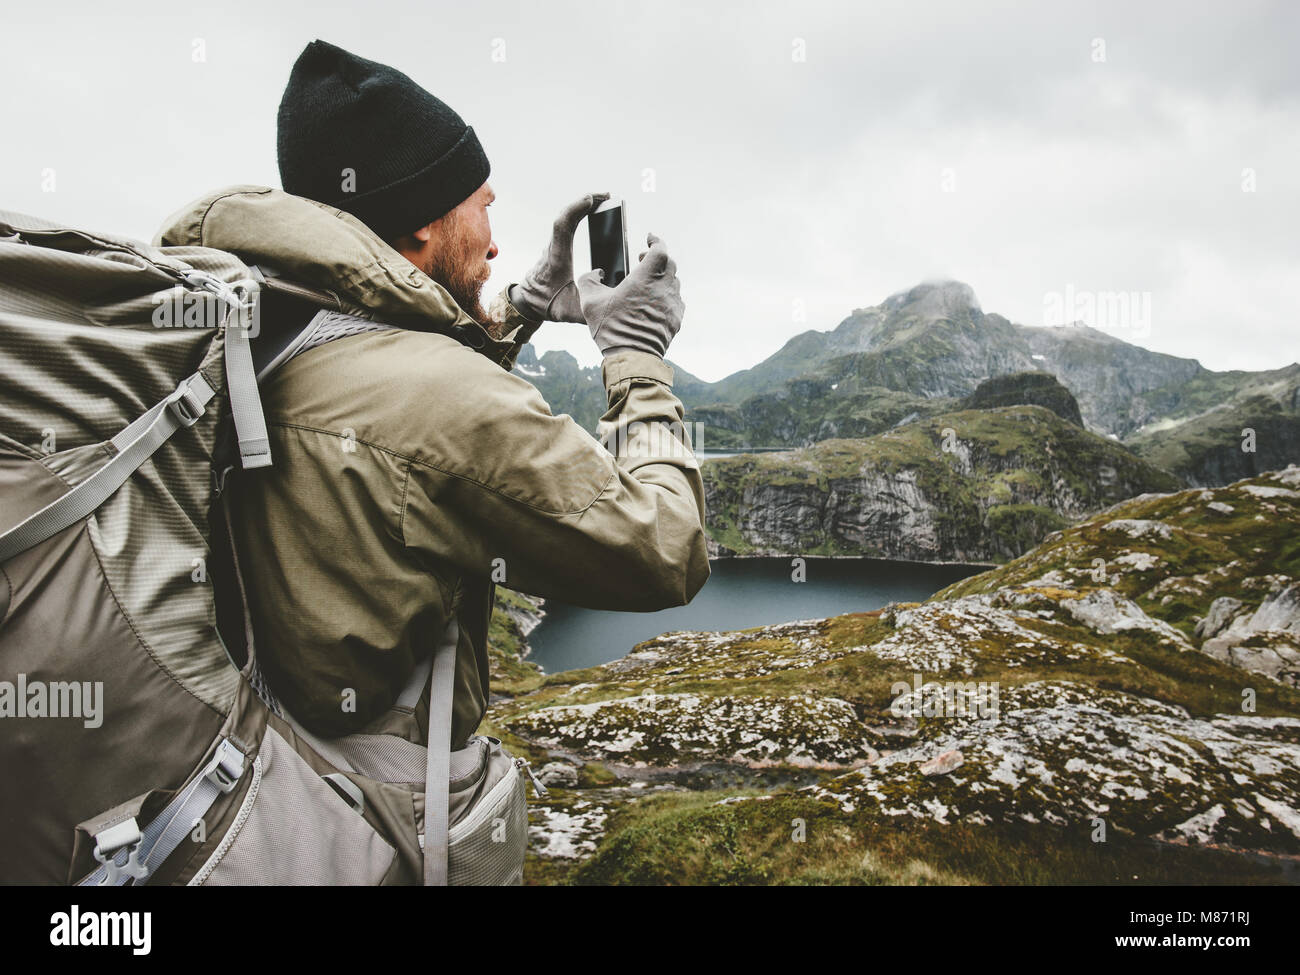 Man traveler checking smartphone gps navigator hiking in mountains Travel survival lifestyle concept outdoor active - Stock Image